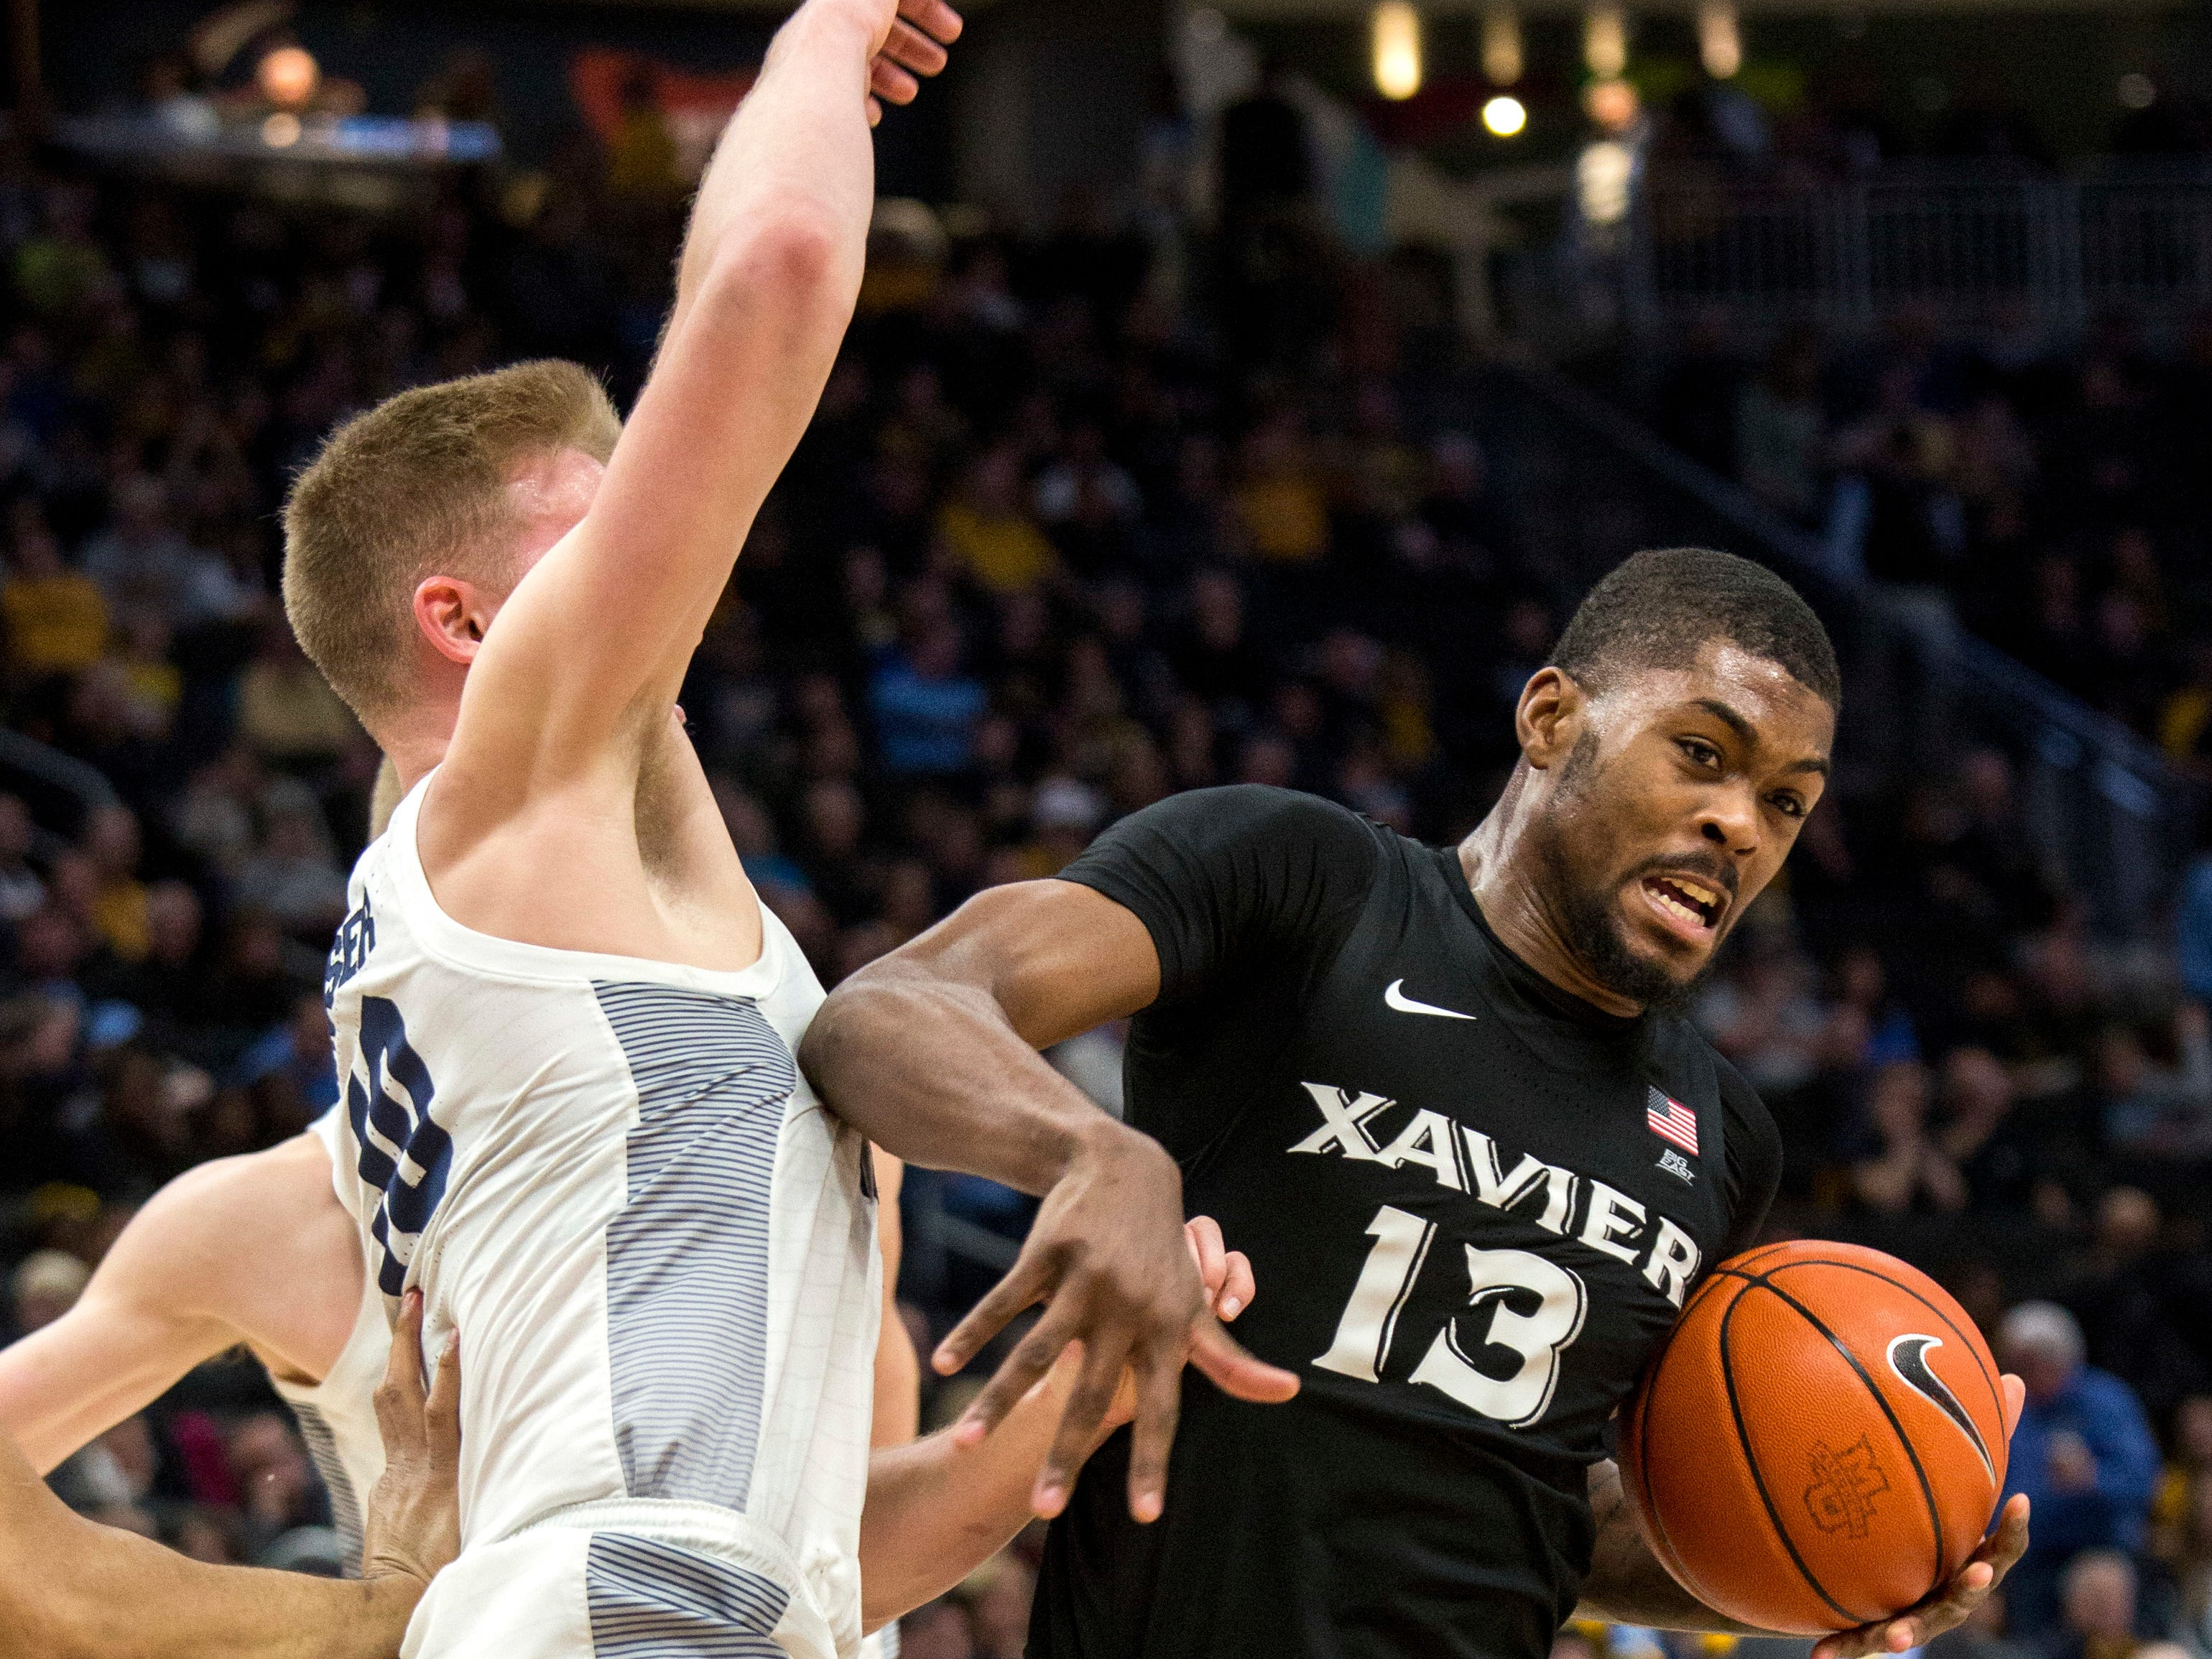 Xavier forward Naji Marshall works down low against Marquette forward Sam Hauser during the second half Sunday.